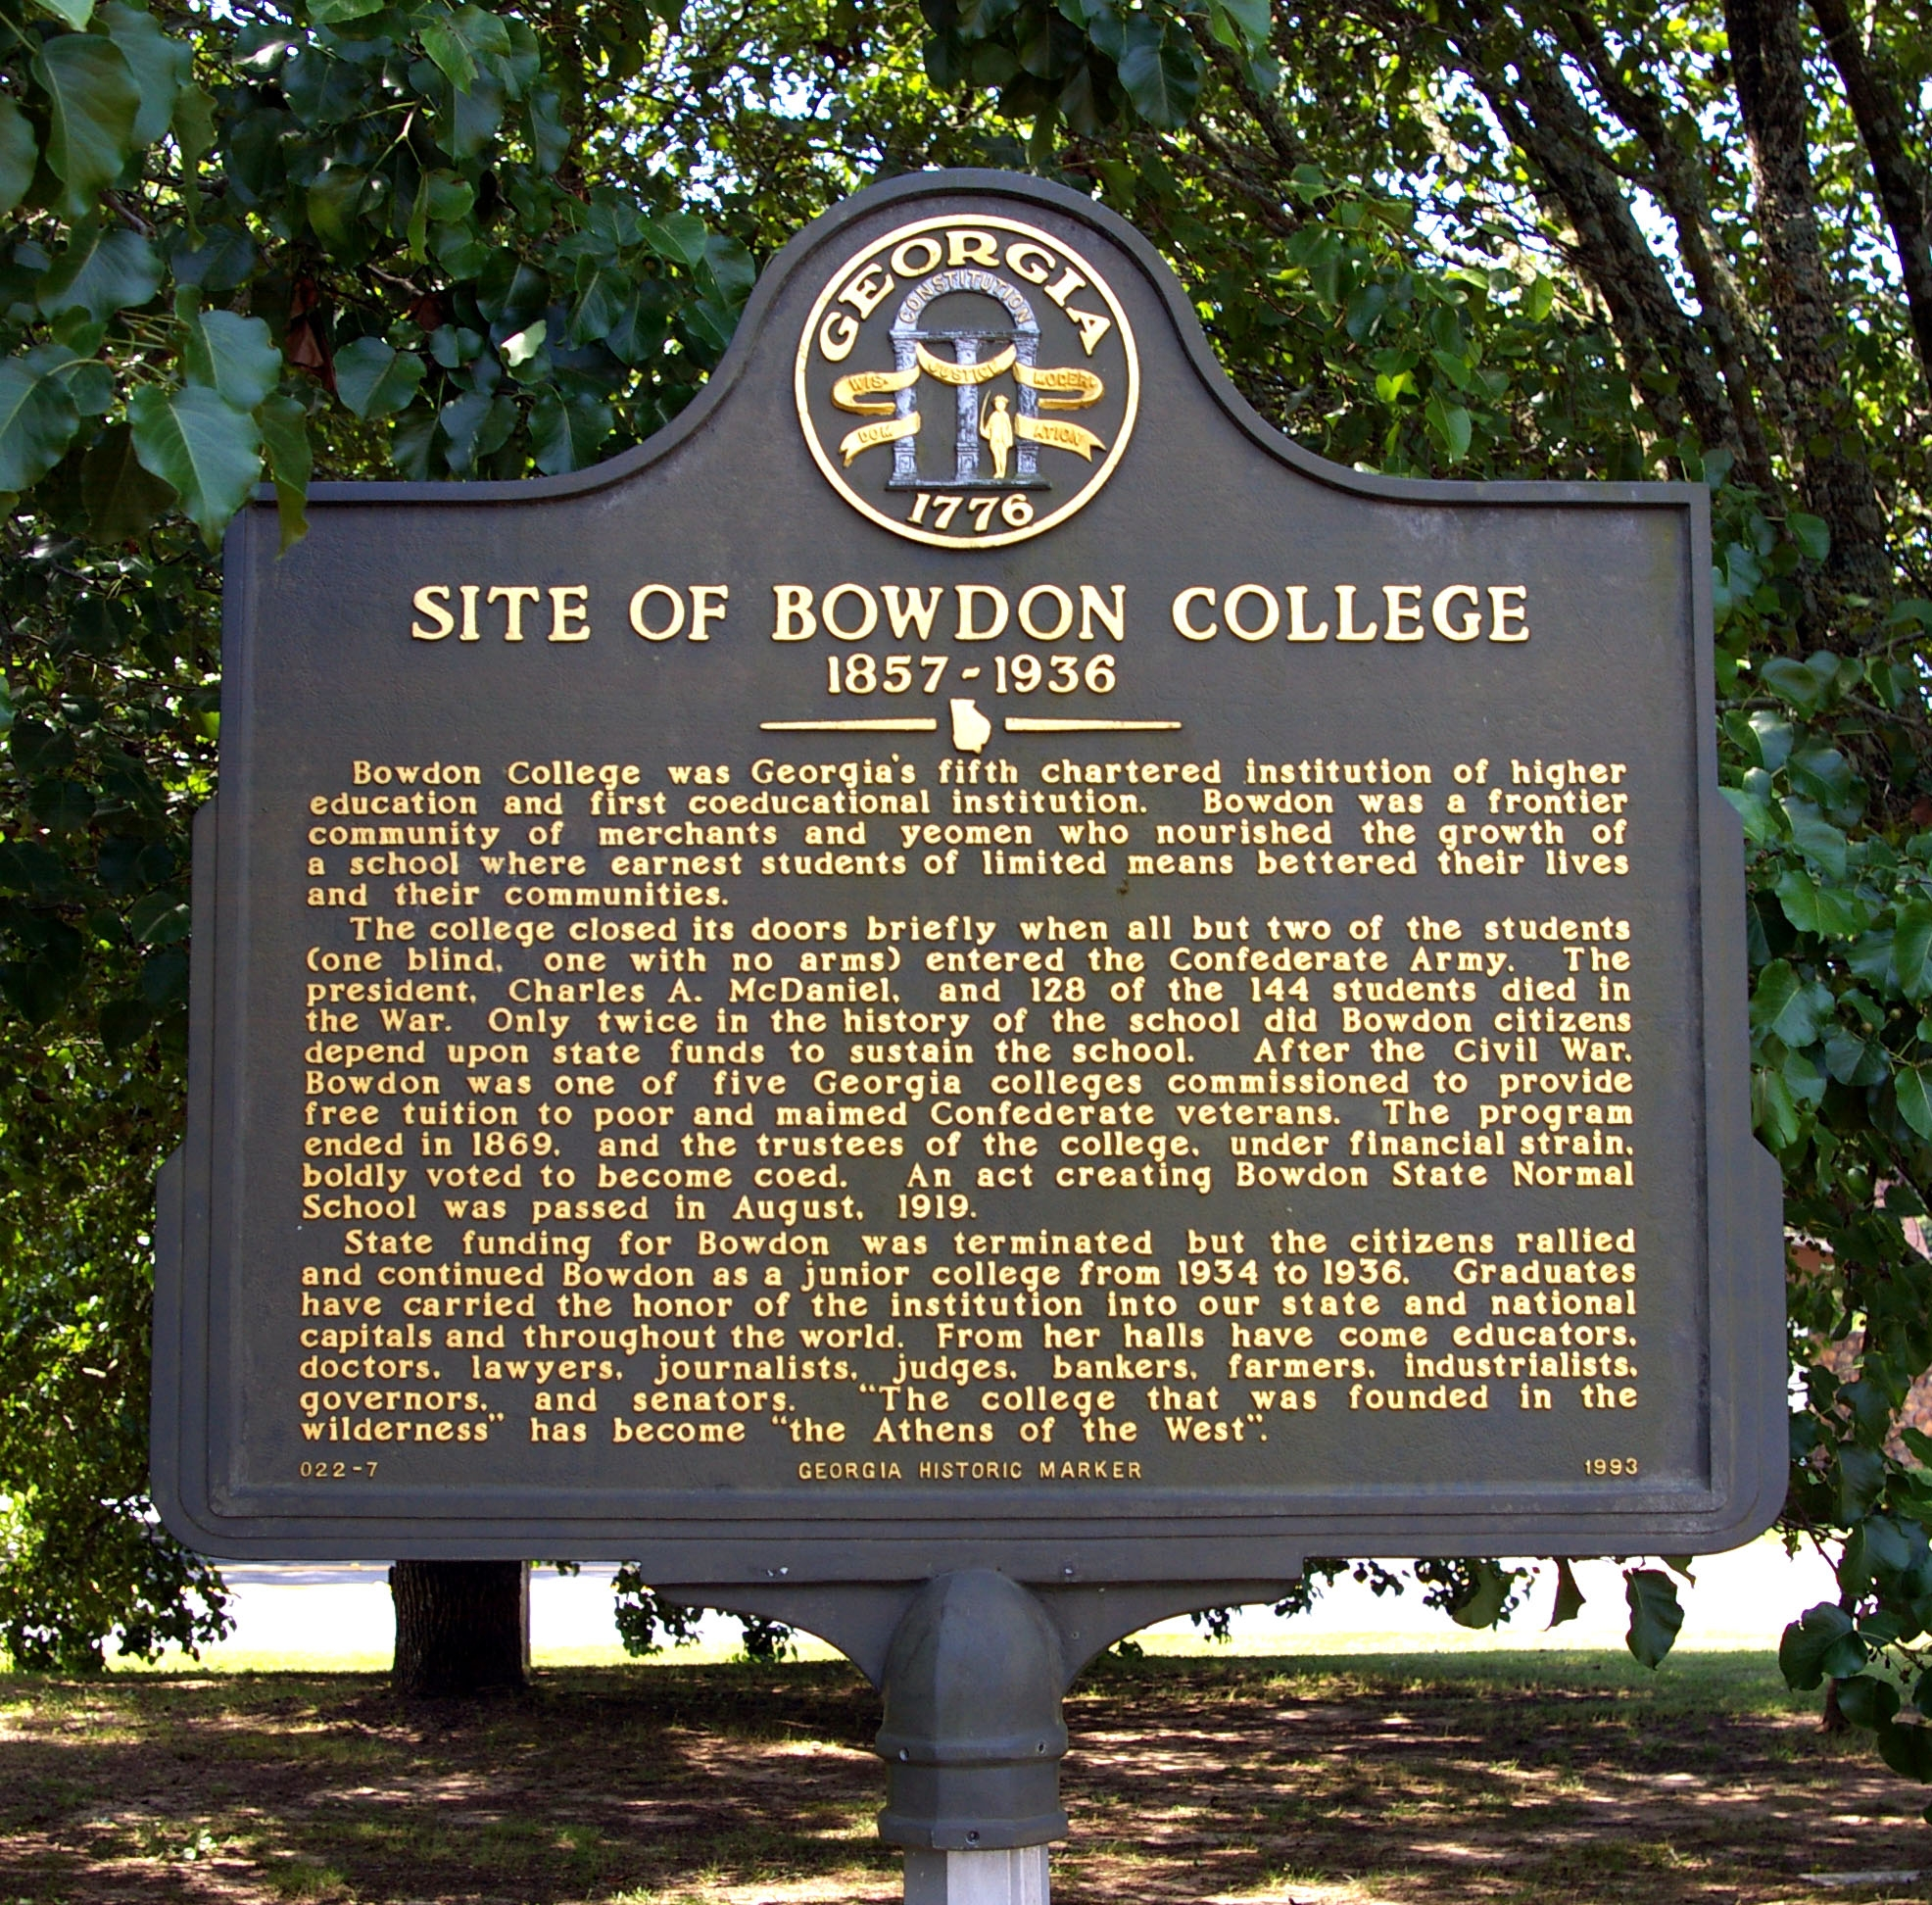 Site of Bowdon College Marker